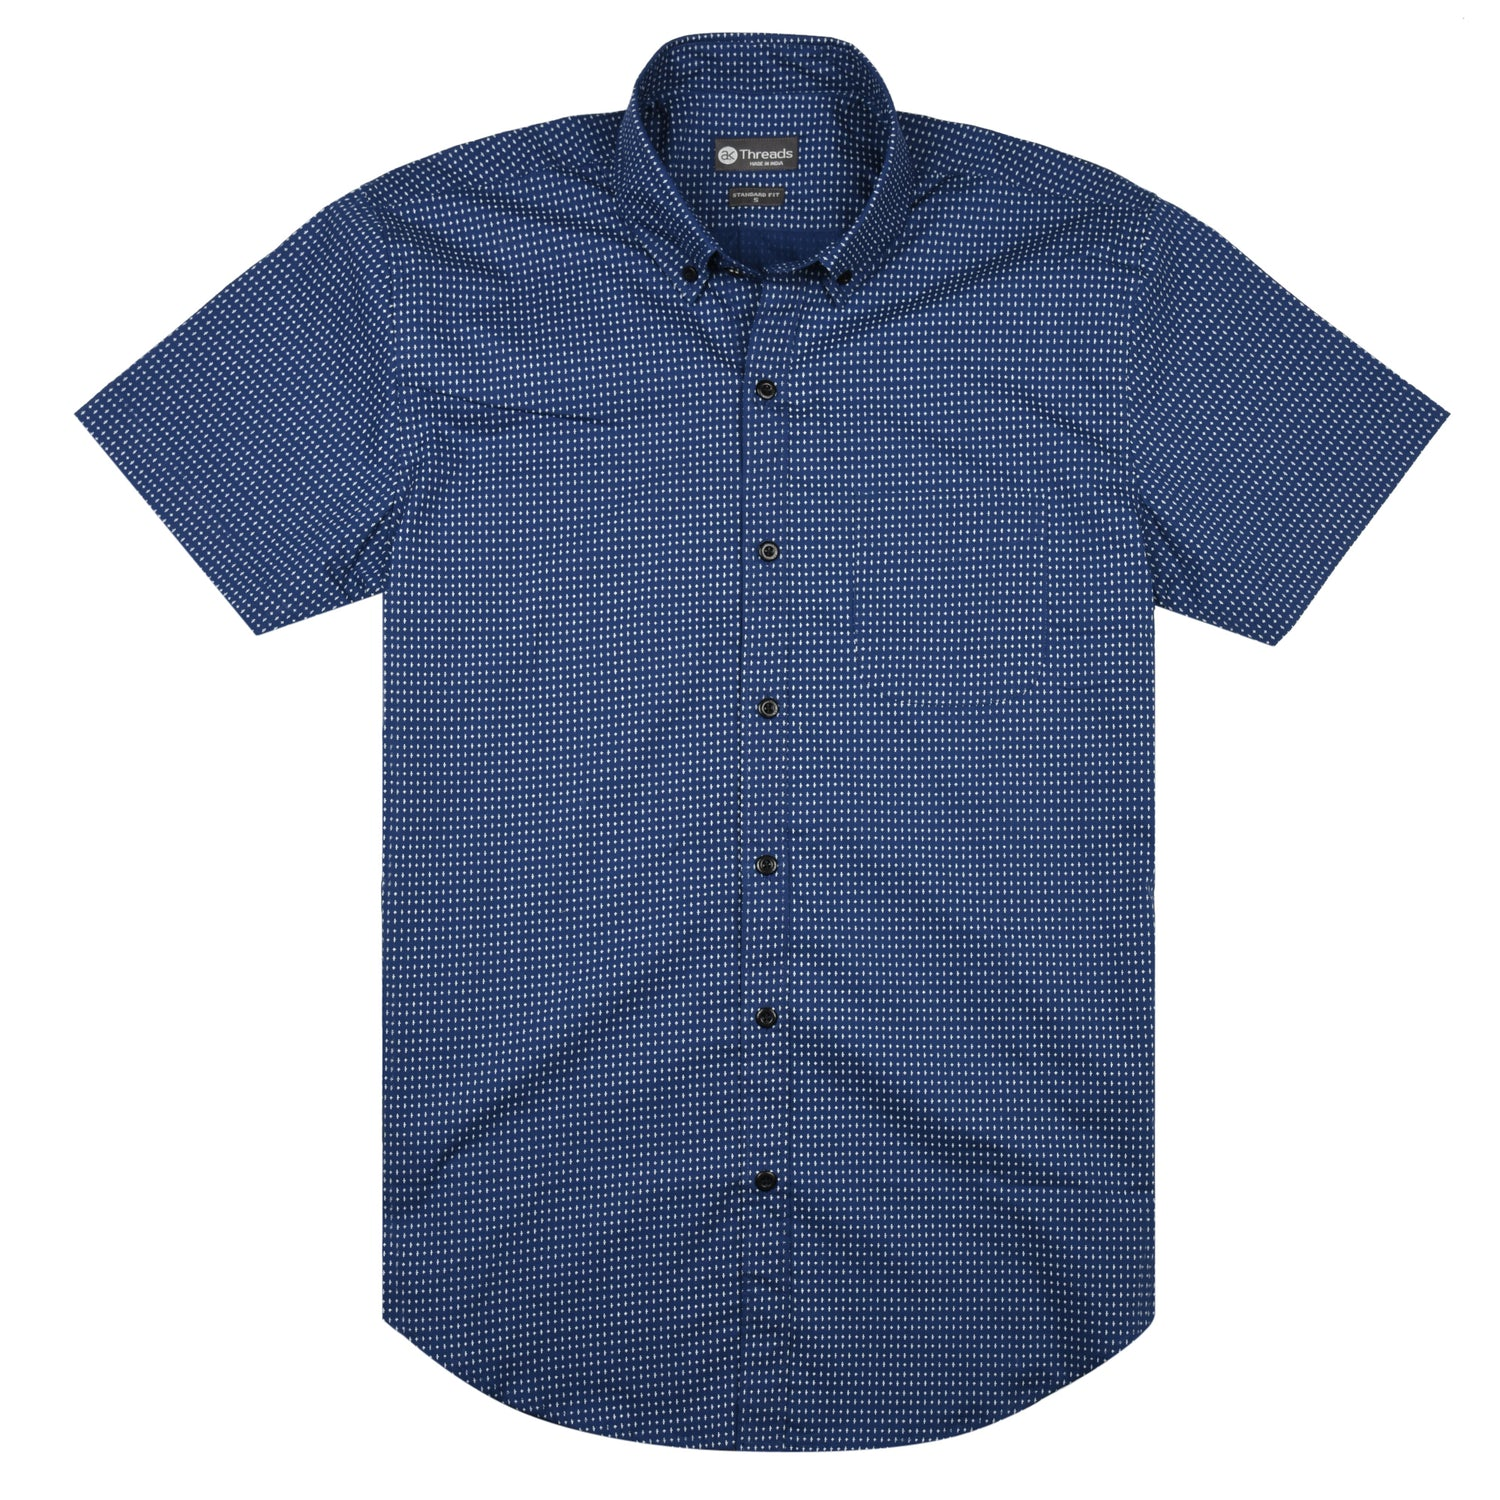 Tile Pattern Short Sleeve Shirt